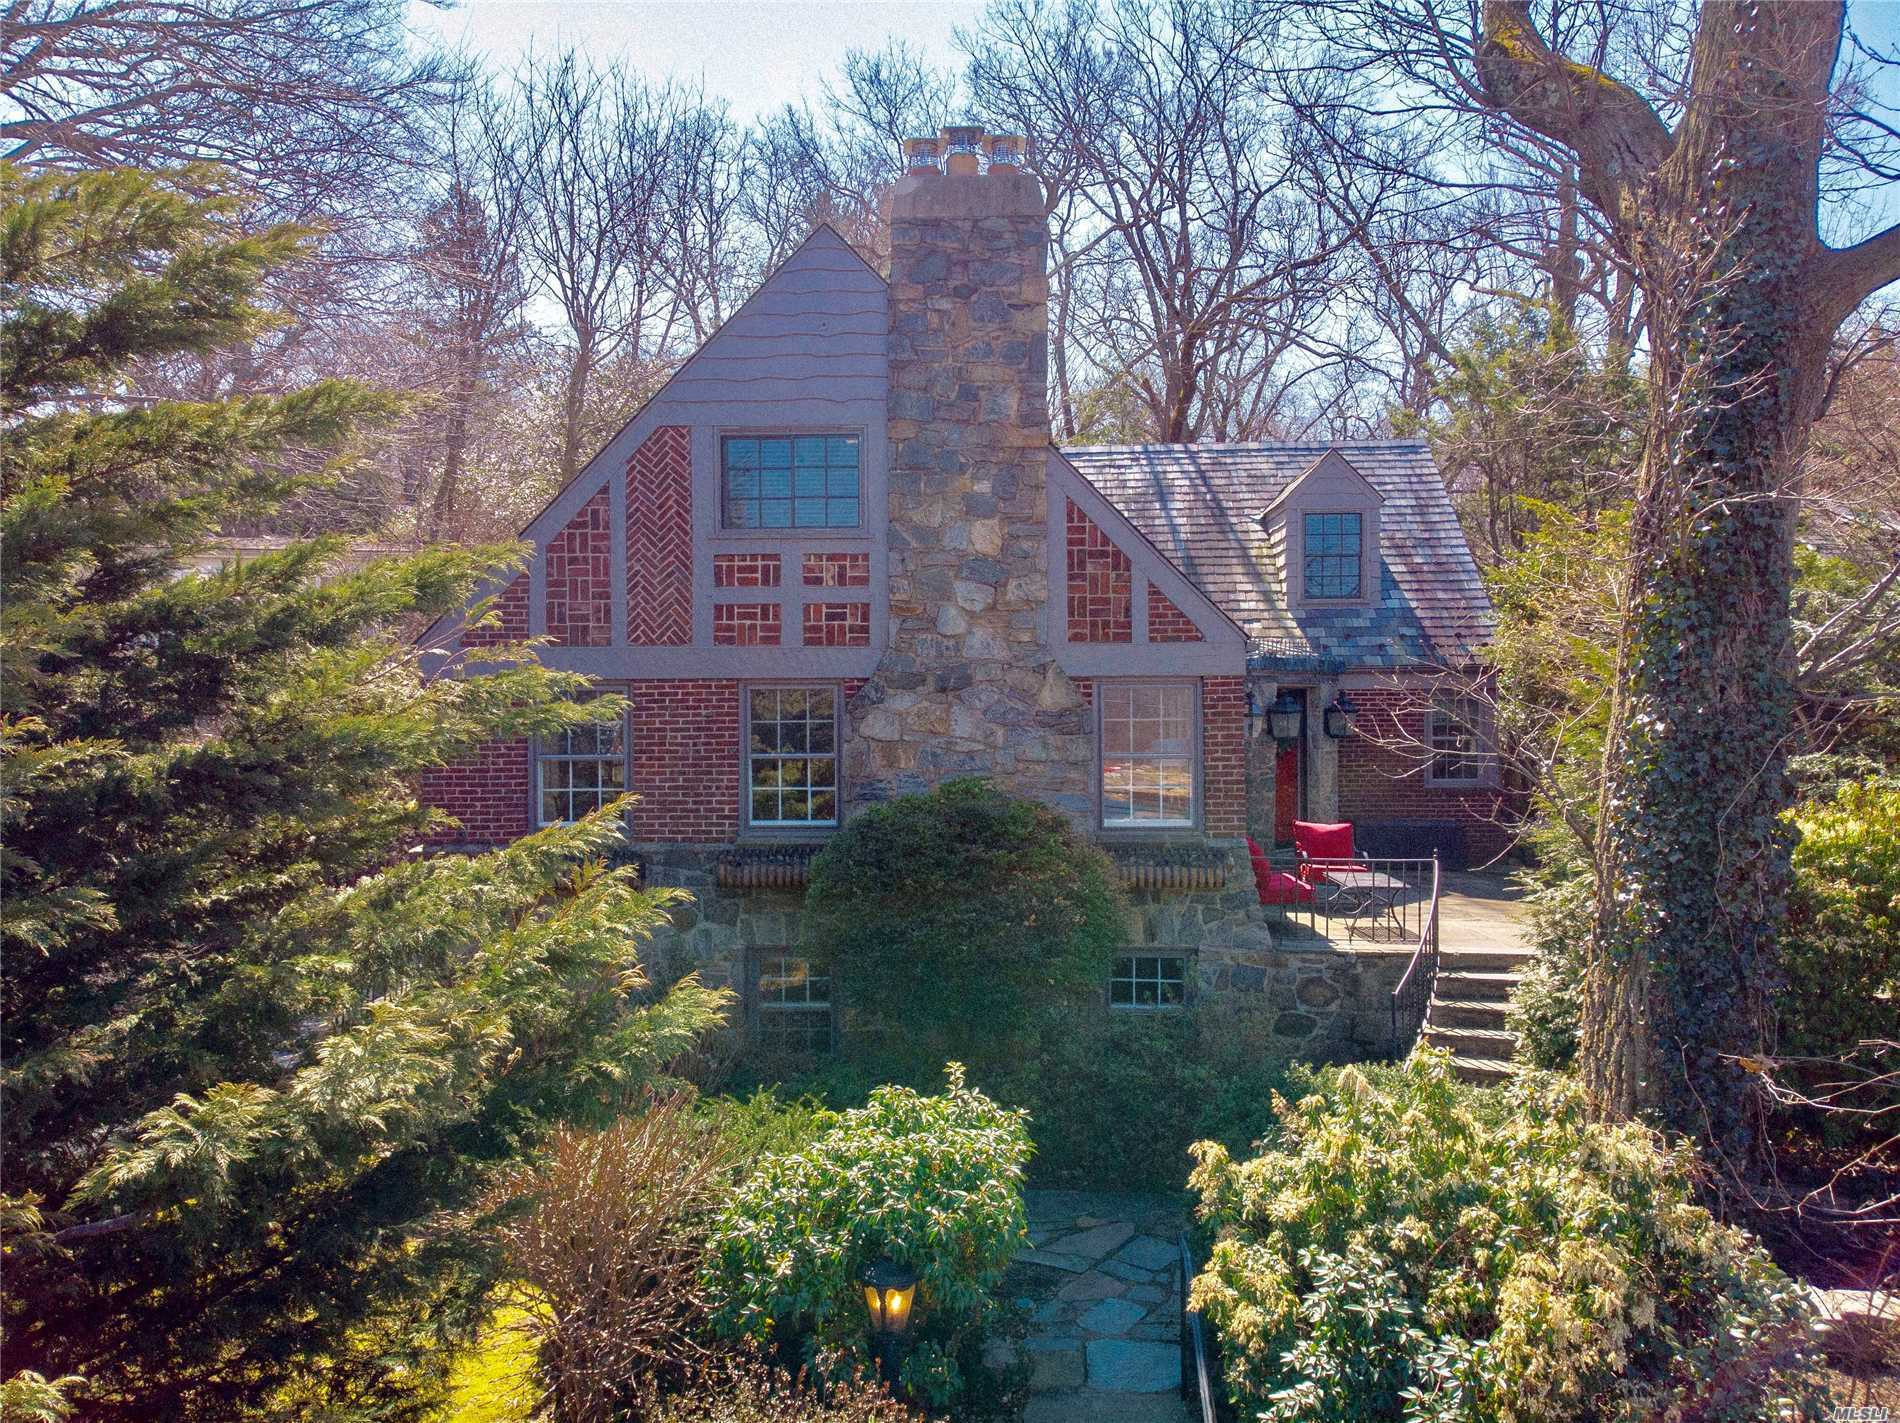 Charming Brick Tudor w/Waterviews Located in the Best Spot above Hempstead Hbr & Below The Village! Easy Access to All! Open, Airy & Happy Define this Beaut.Maintained Home. Great Flow For Entertaining!Slate Roof, Redone Oversized Gazebo & Sports Court.Lower Level Adds a Whole Other Dimension..1st Flr Oversized Master Suite & Gourmet EIK w/Wolf Range & Sub Zero Frig. CAC 1sL Flr.Lots of Backyard Space for Entertaining & Fun! Close to SC Beach, Restaurants, Sunsets & Music